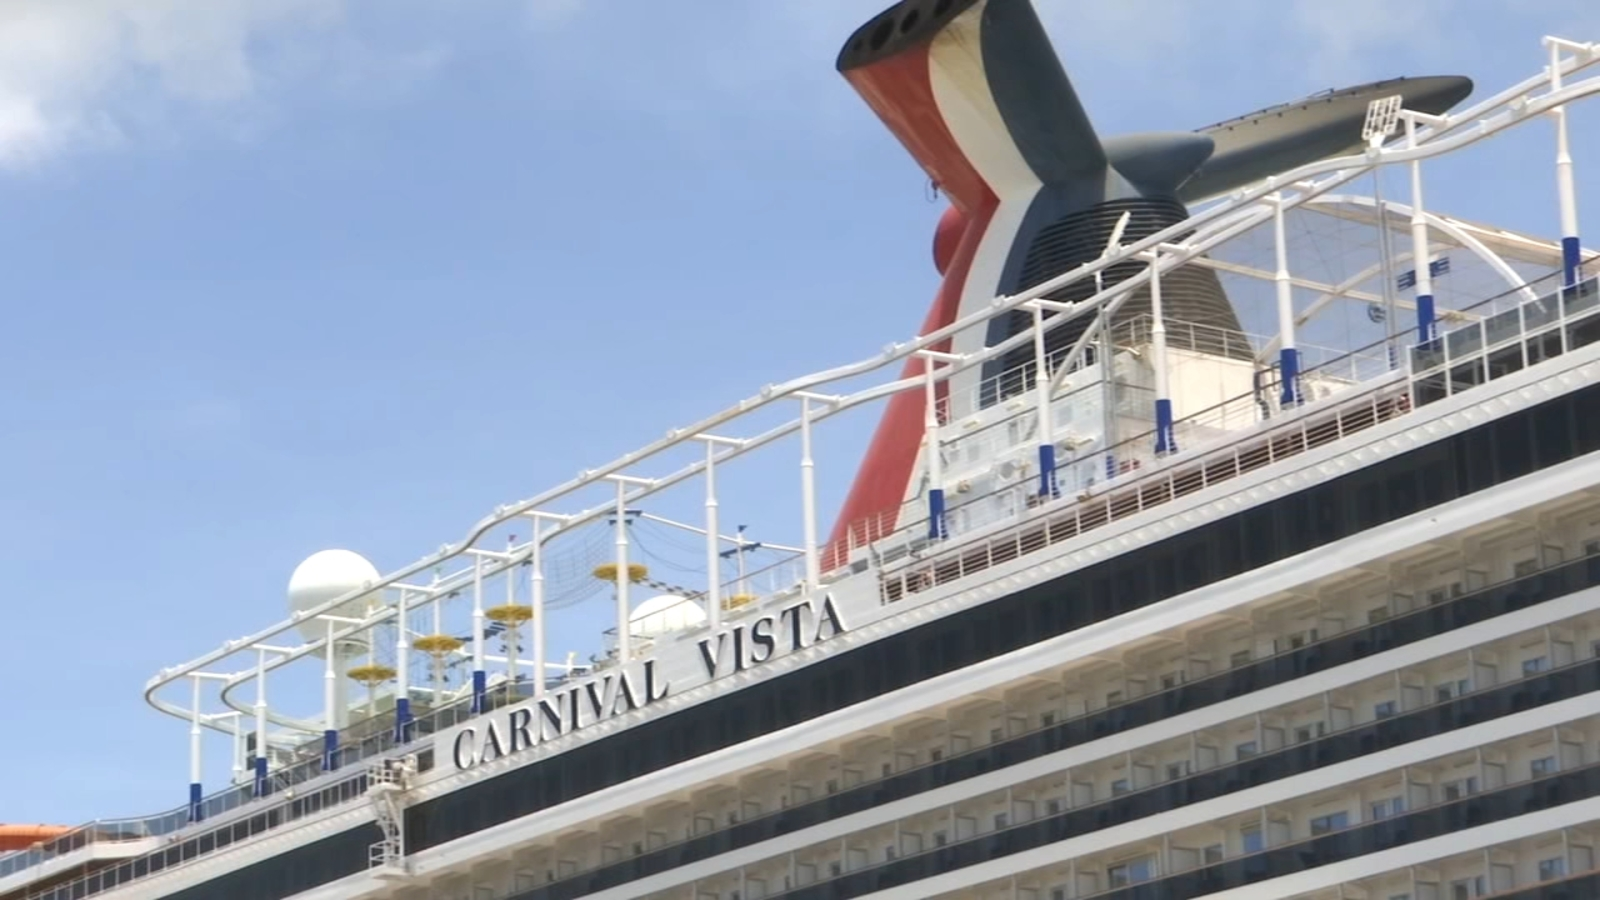 26 crew members and 1 passenger on Carnival ship from Galveston test positive for COVID